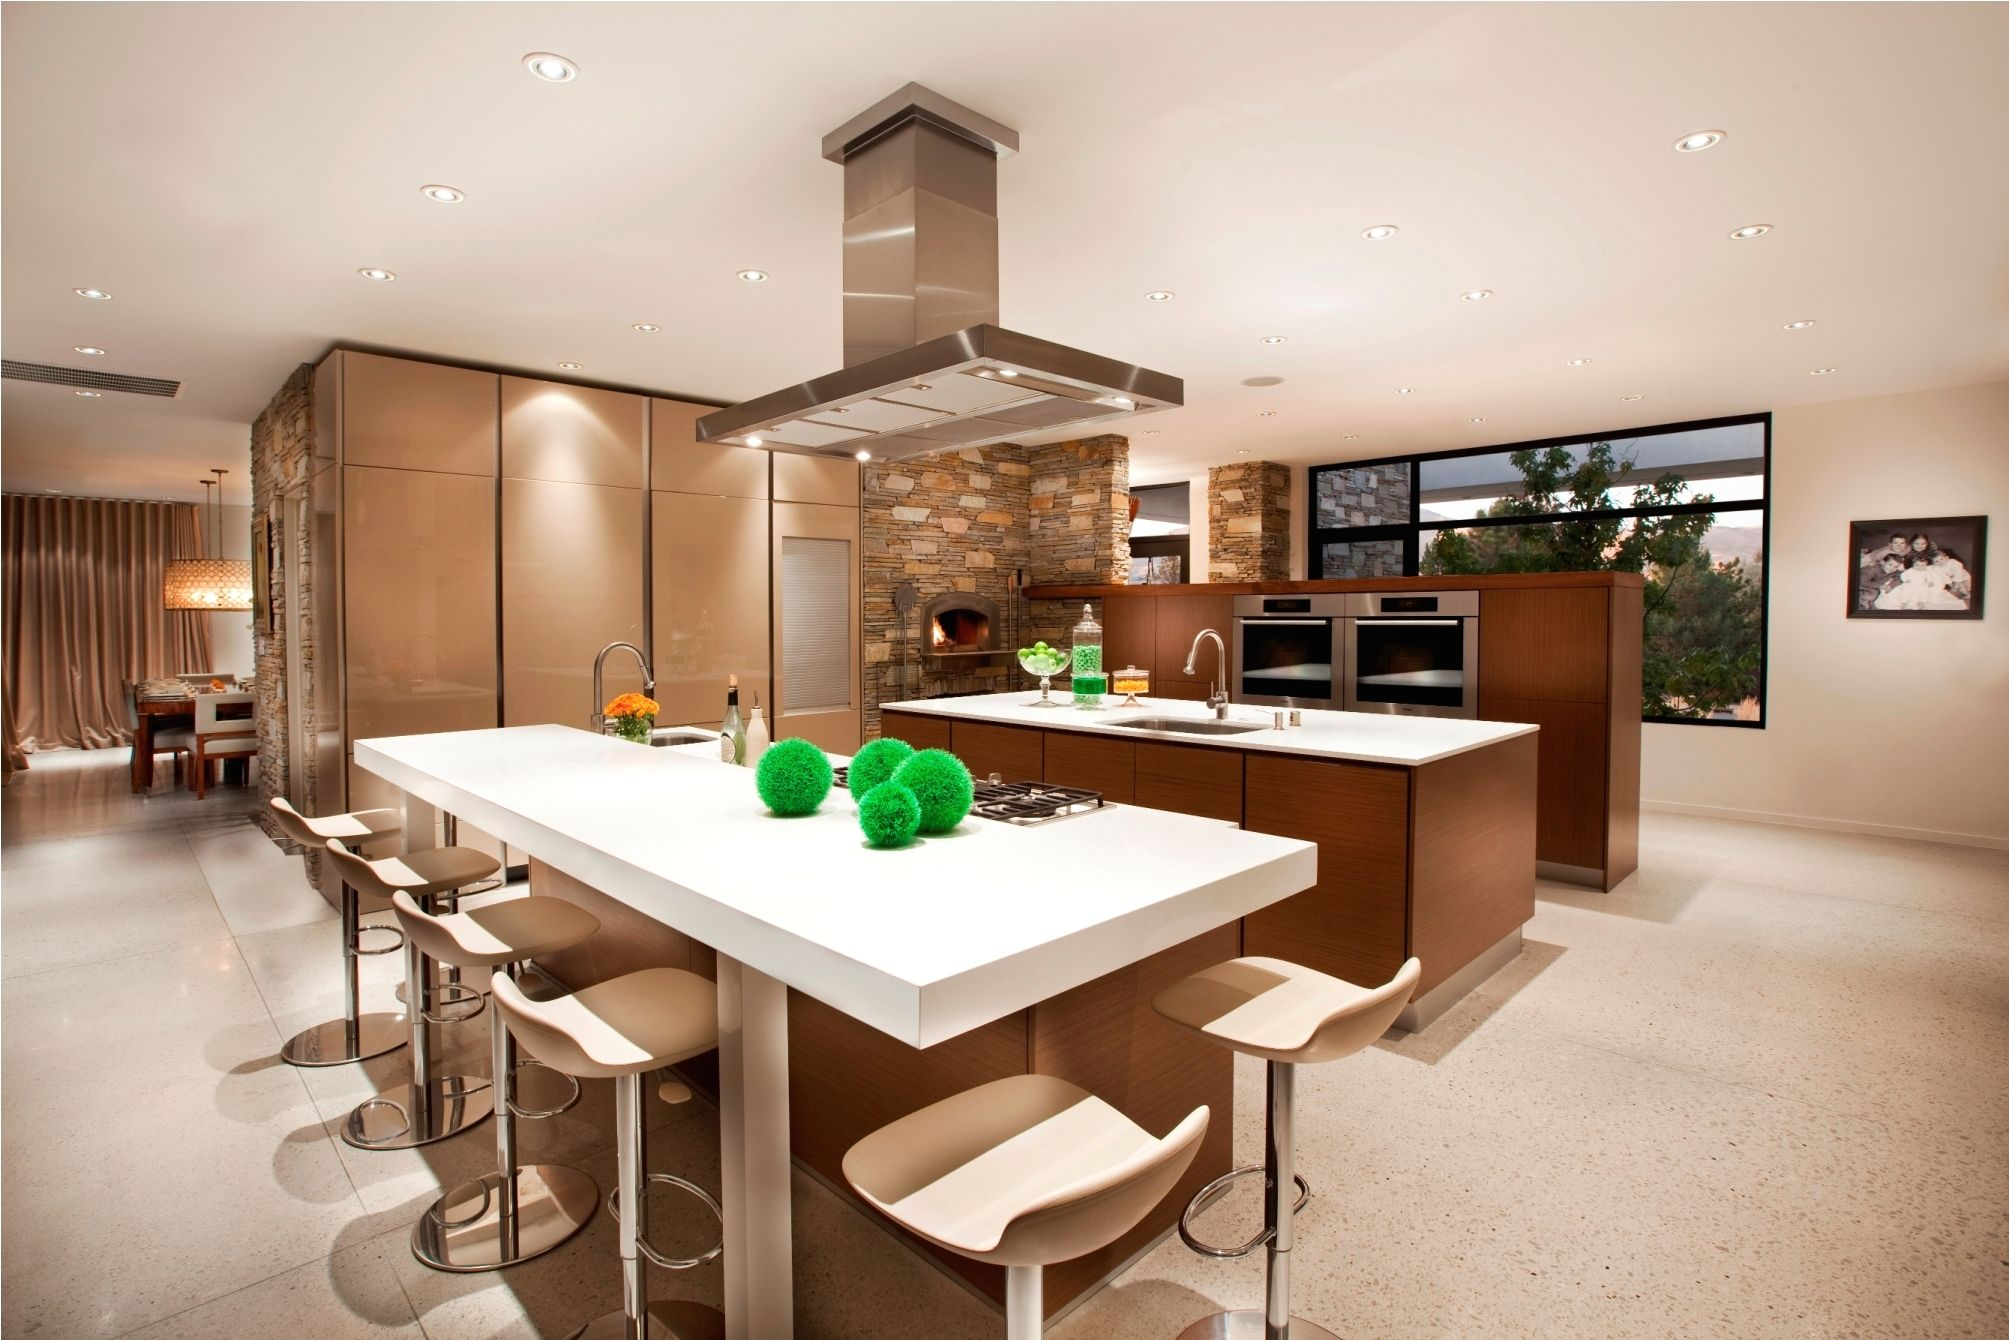 Open Floor Plans: Pros of Cons and Tips for Decorating